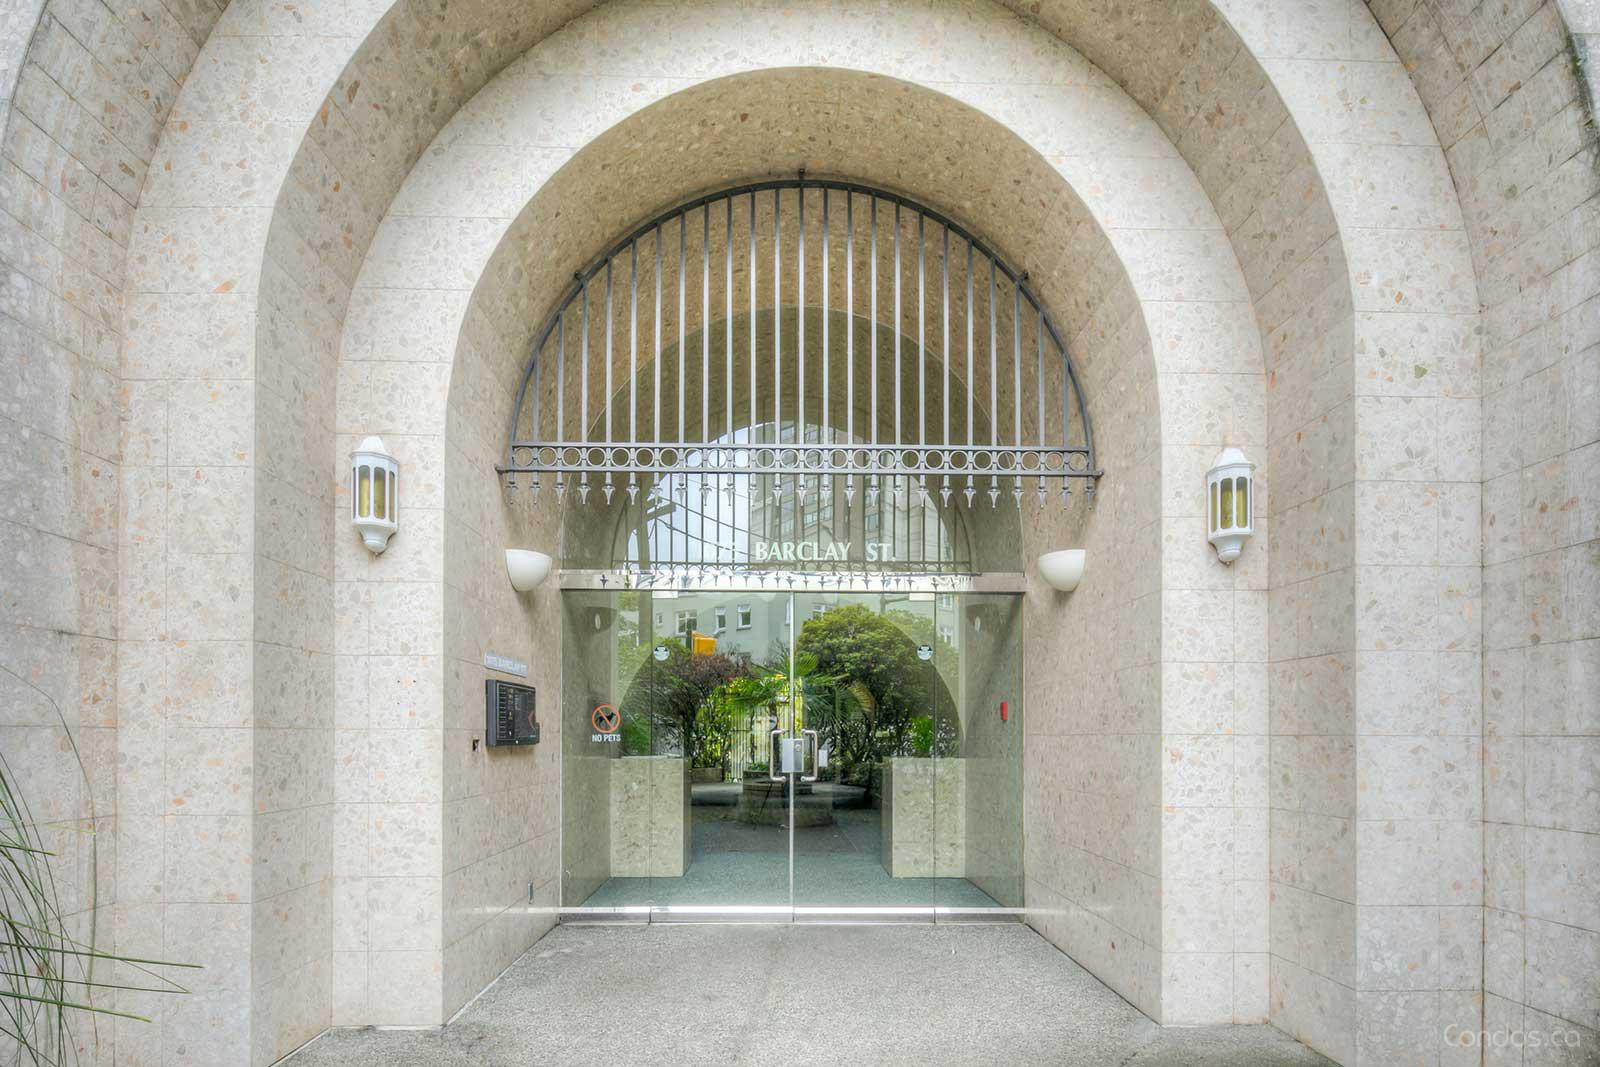 Barclay Terrace at 1075 Barclay St, Vancouver 1